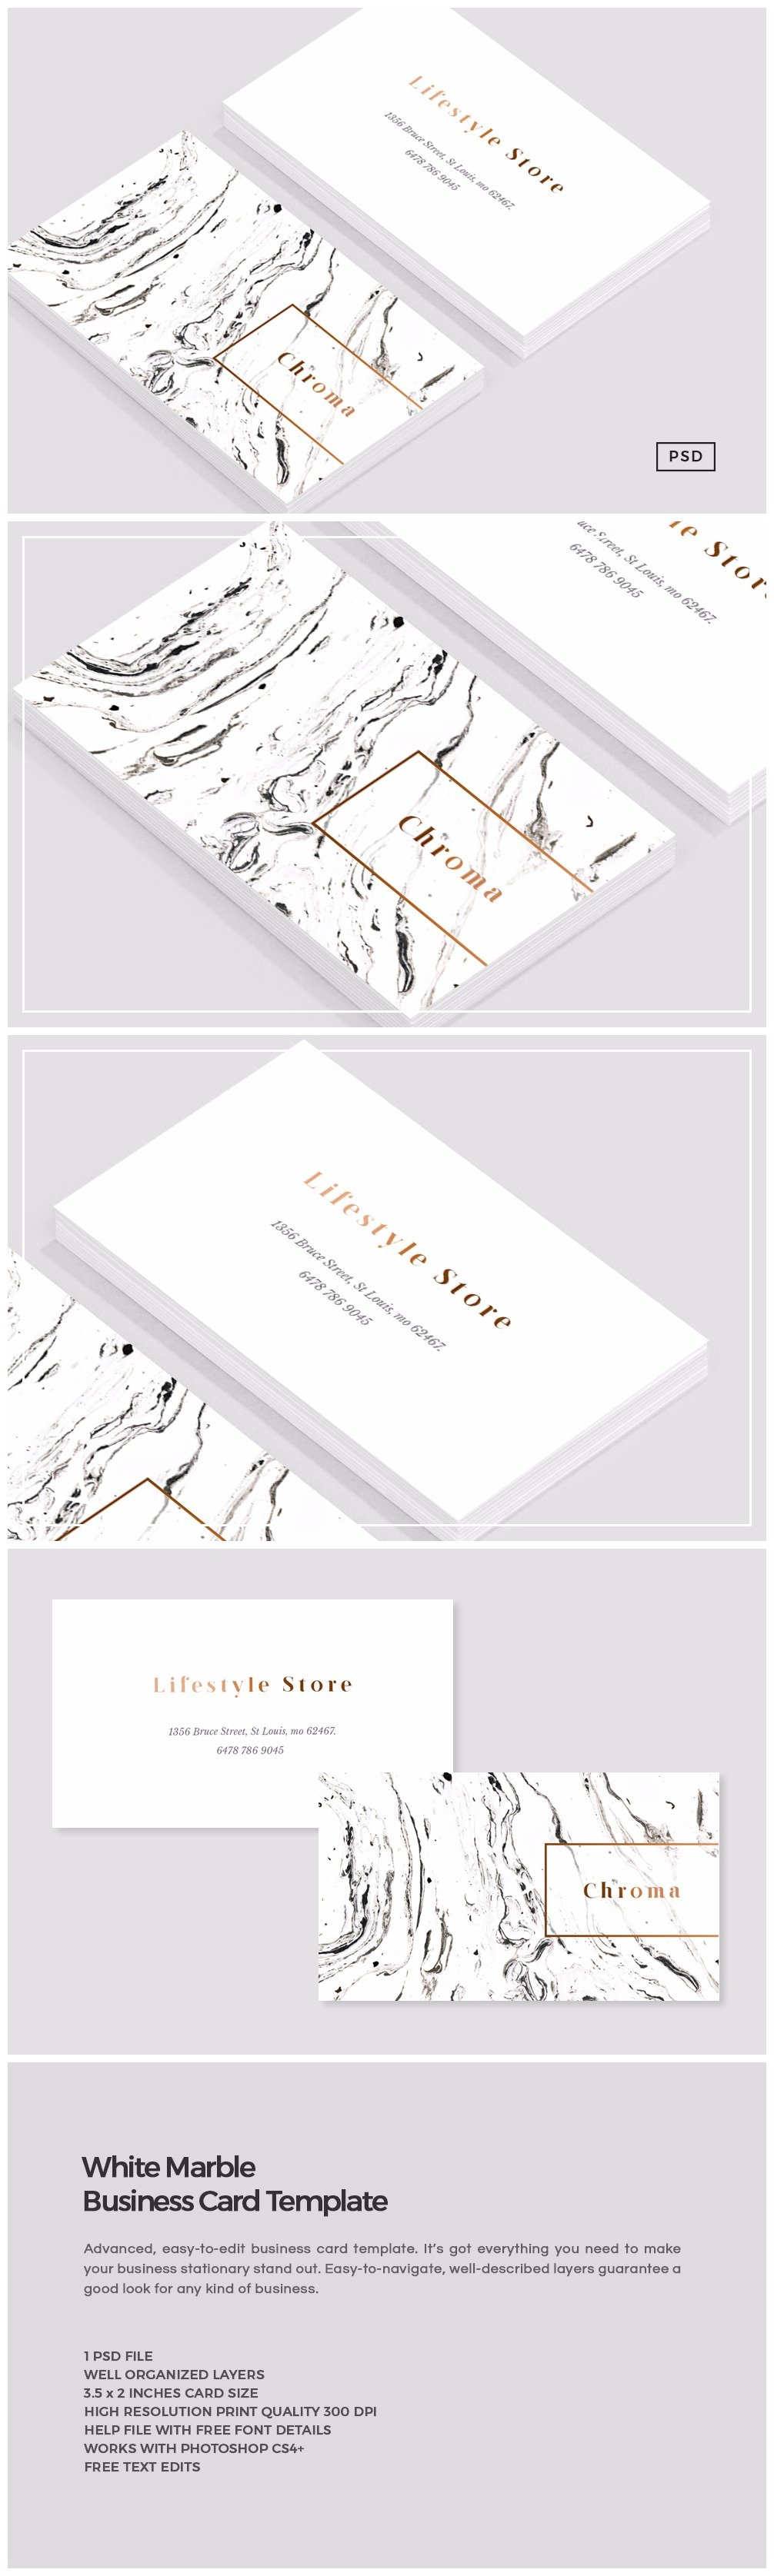 How to design impressive business cards using templates creative white marble copper business card magicingreecefo Image collections